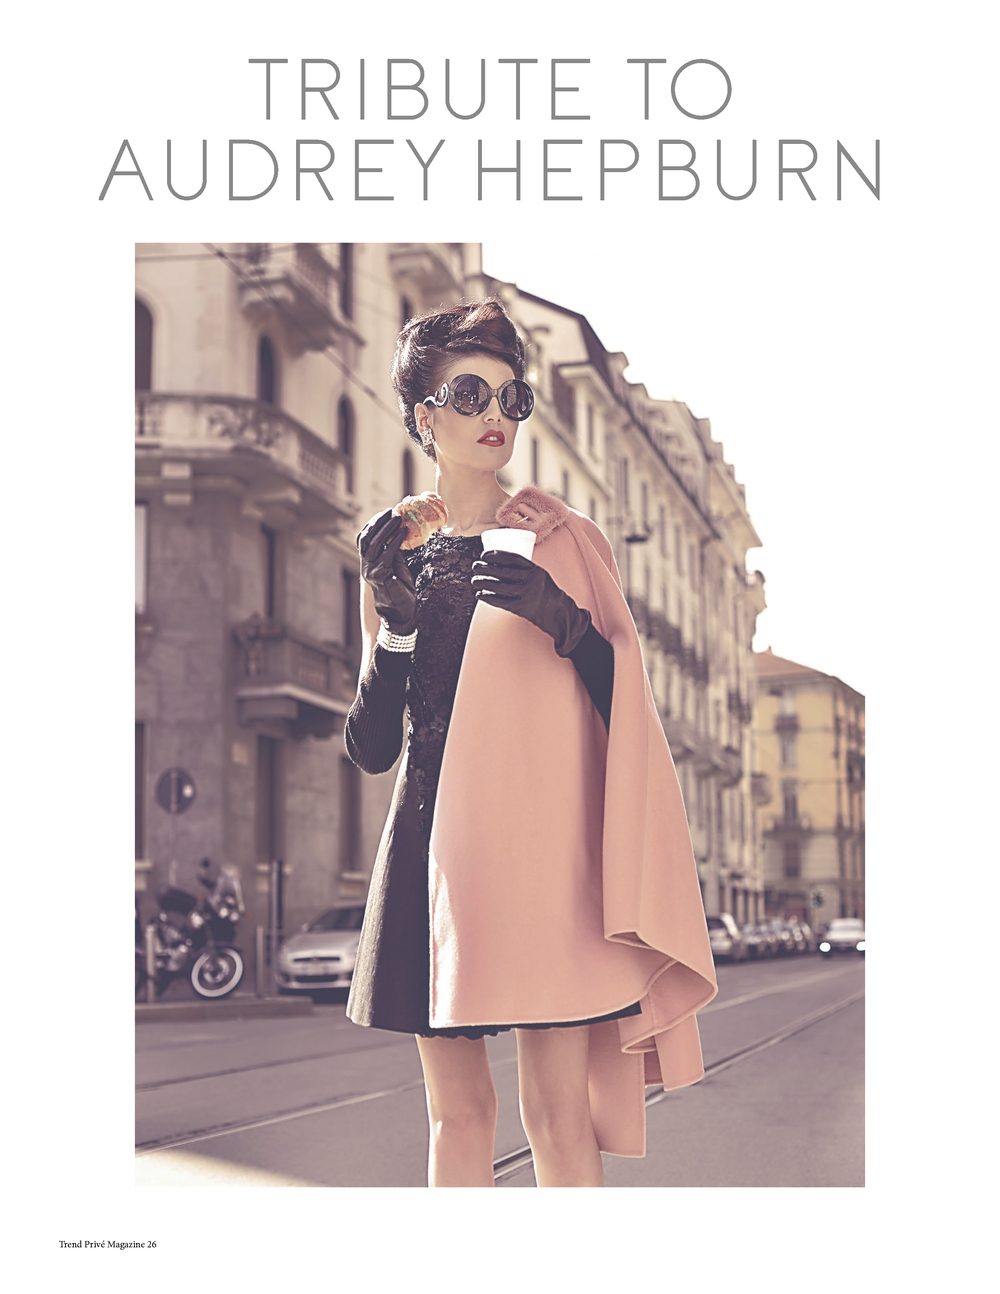 Tribute to Haudrey Hepburn (3).jpg